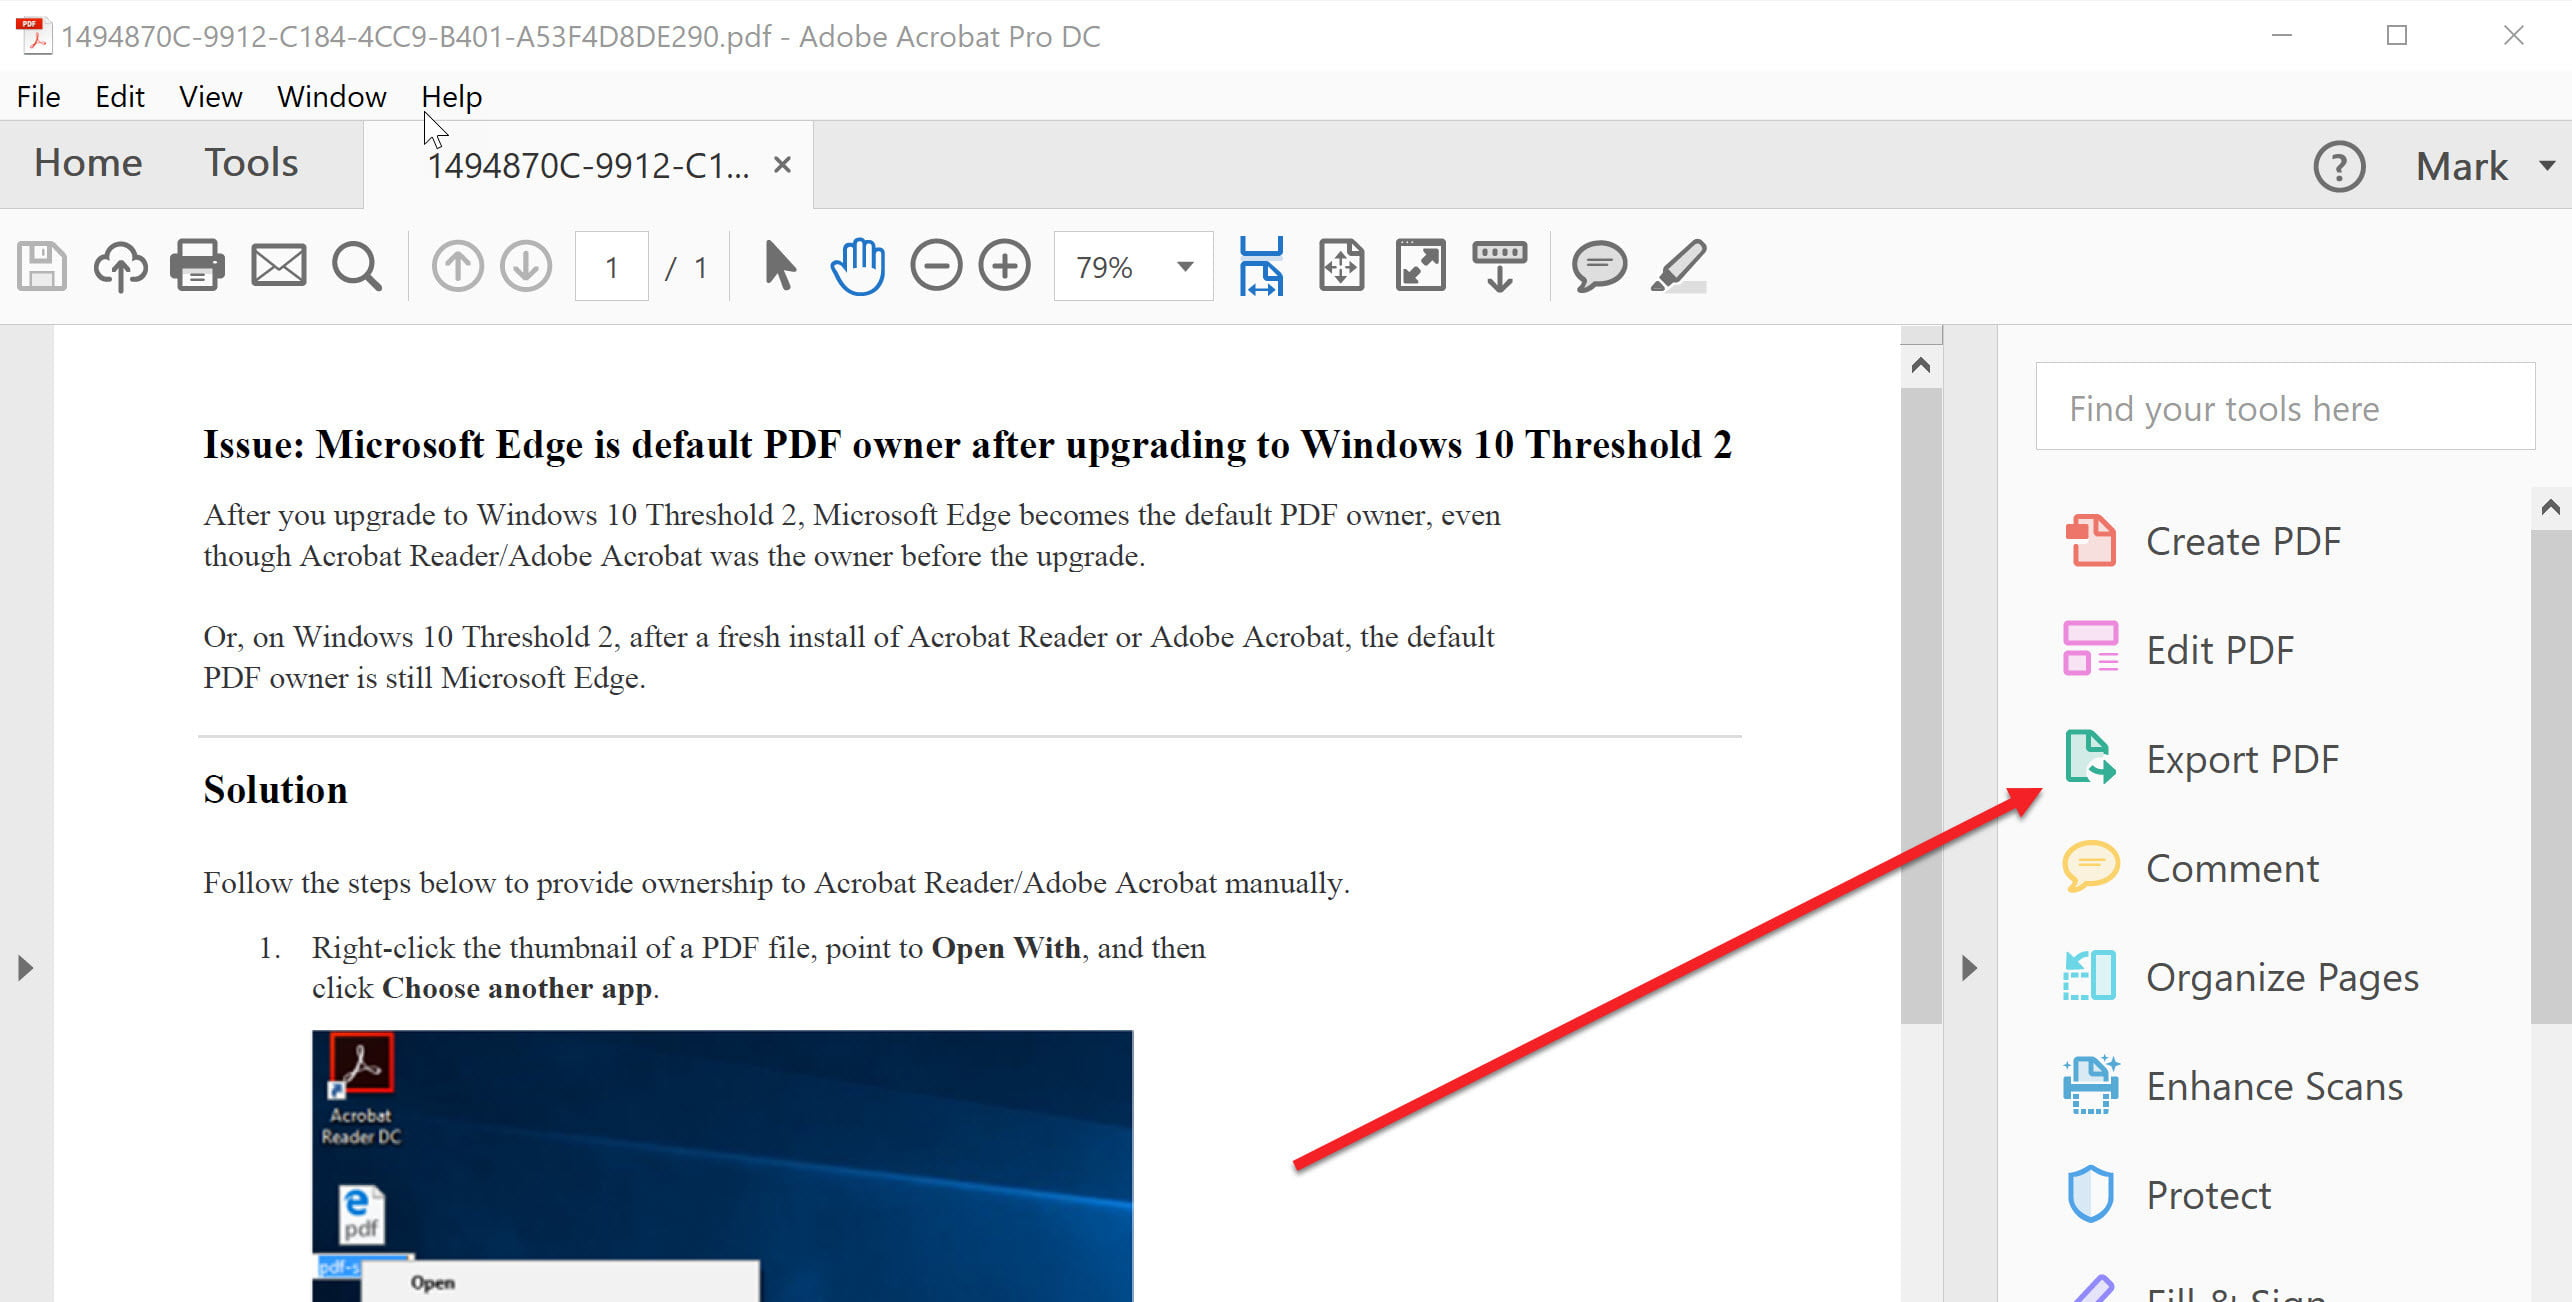 How to translate text in Word